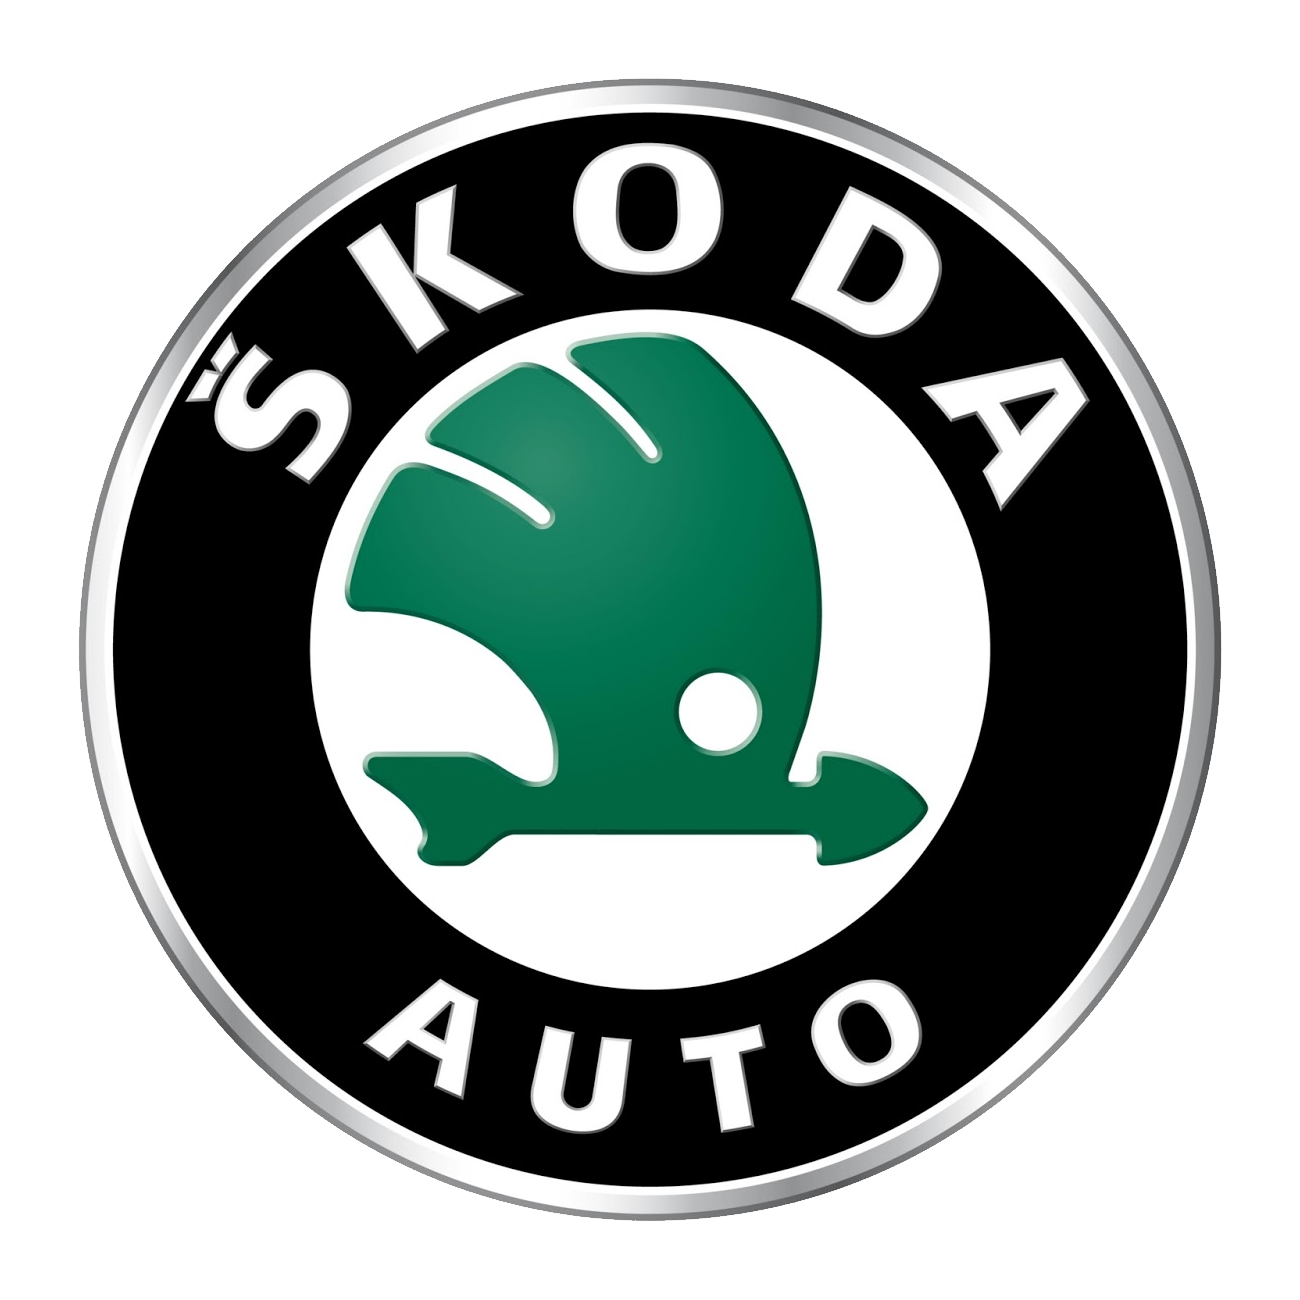 Skoda Gearbox Prices